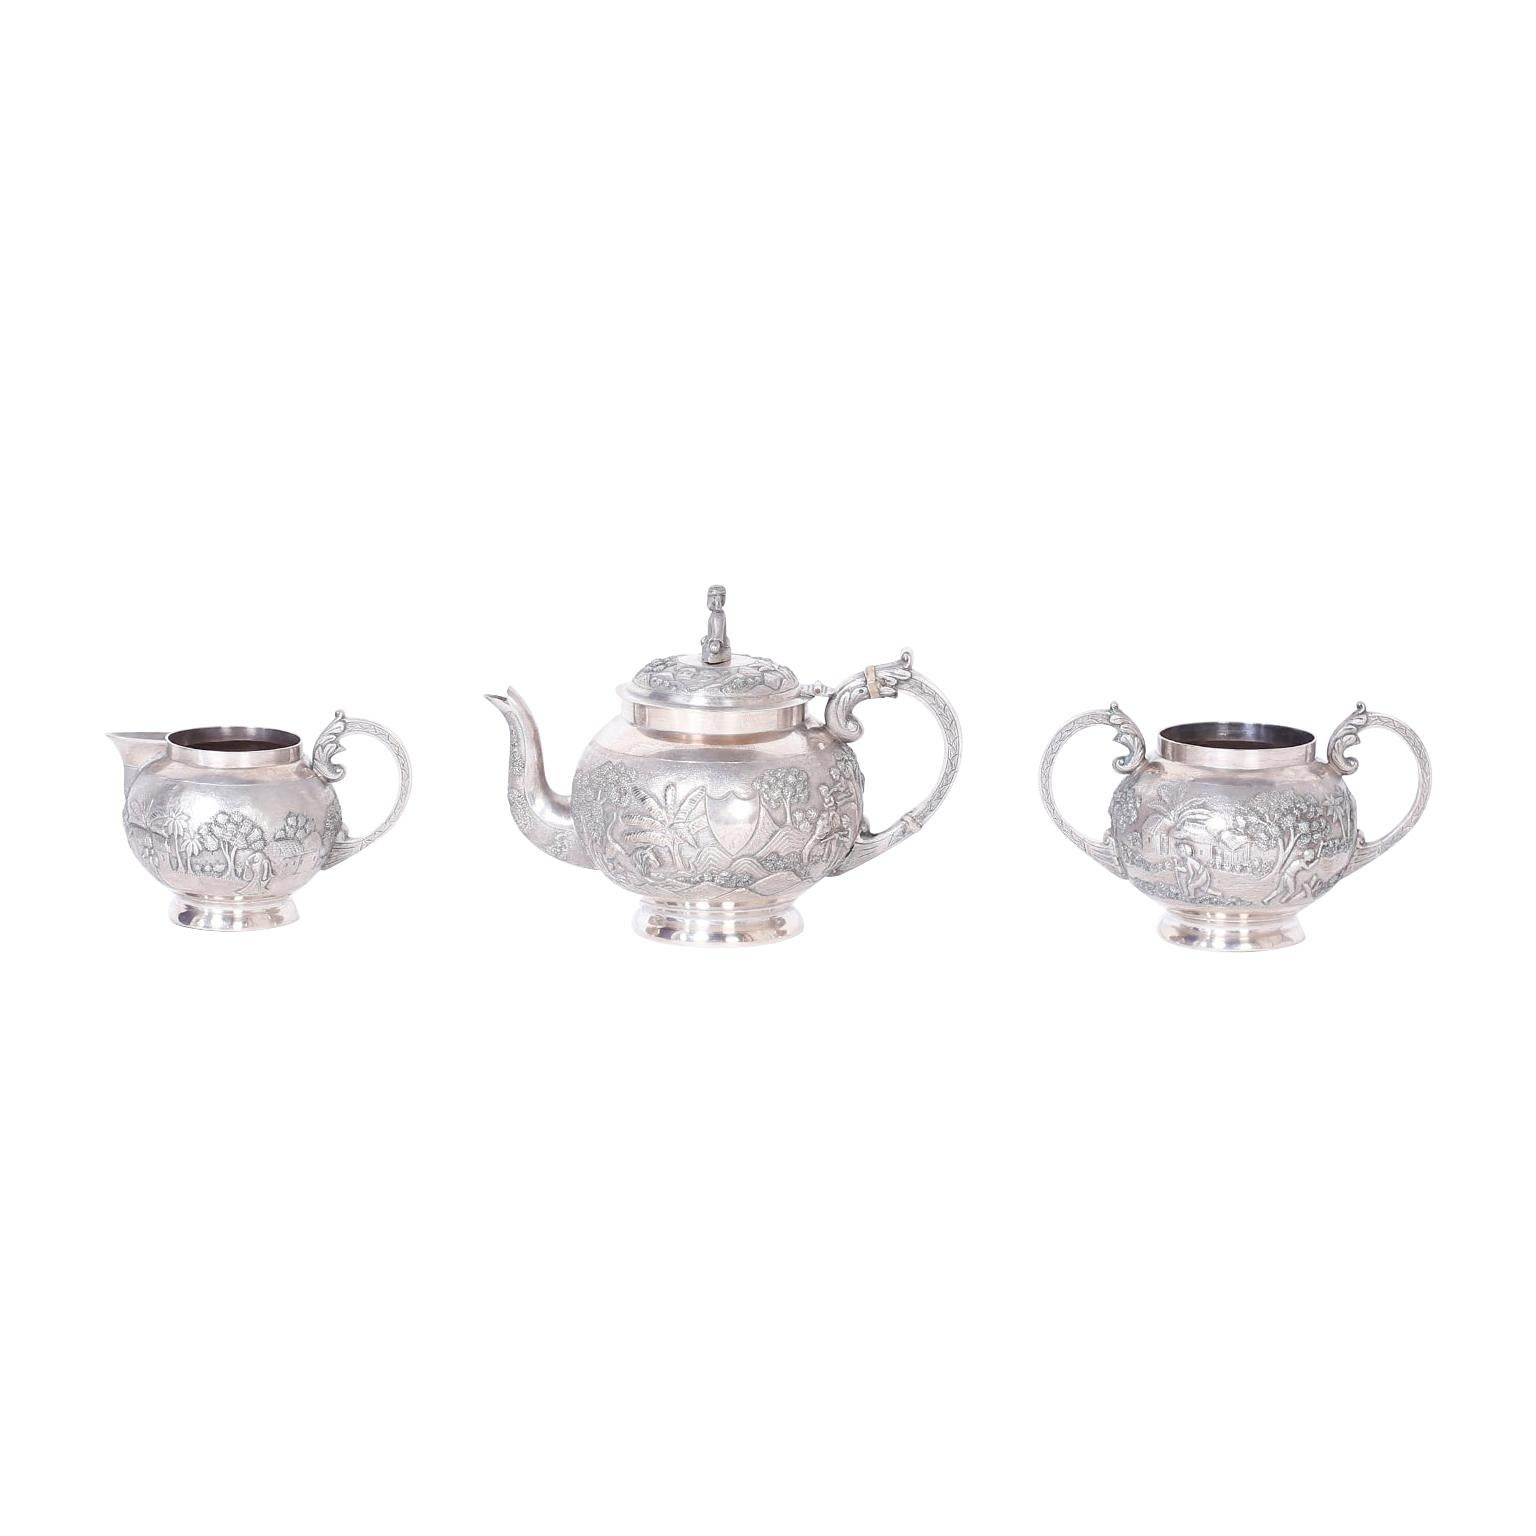 Three-Piece Antique Anglo Indian Silver Tea Service